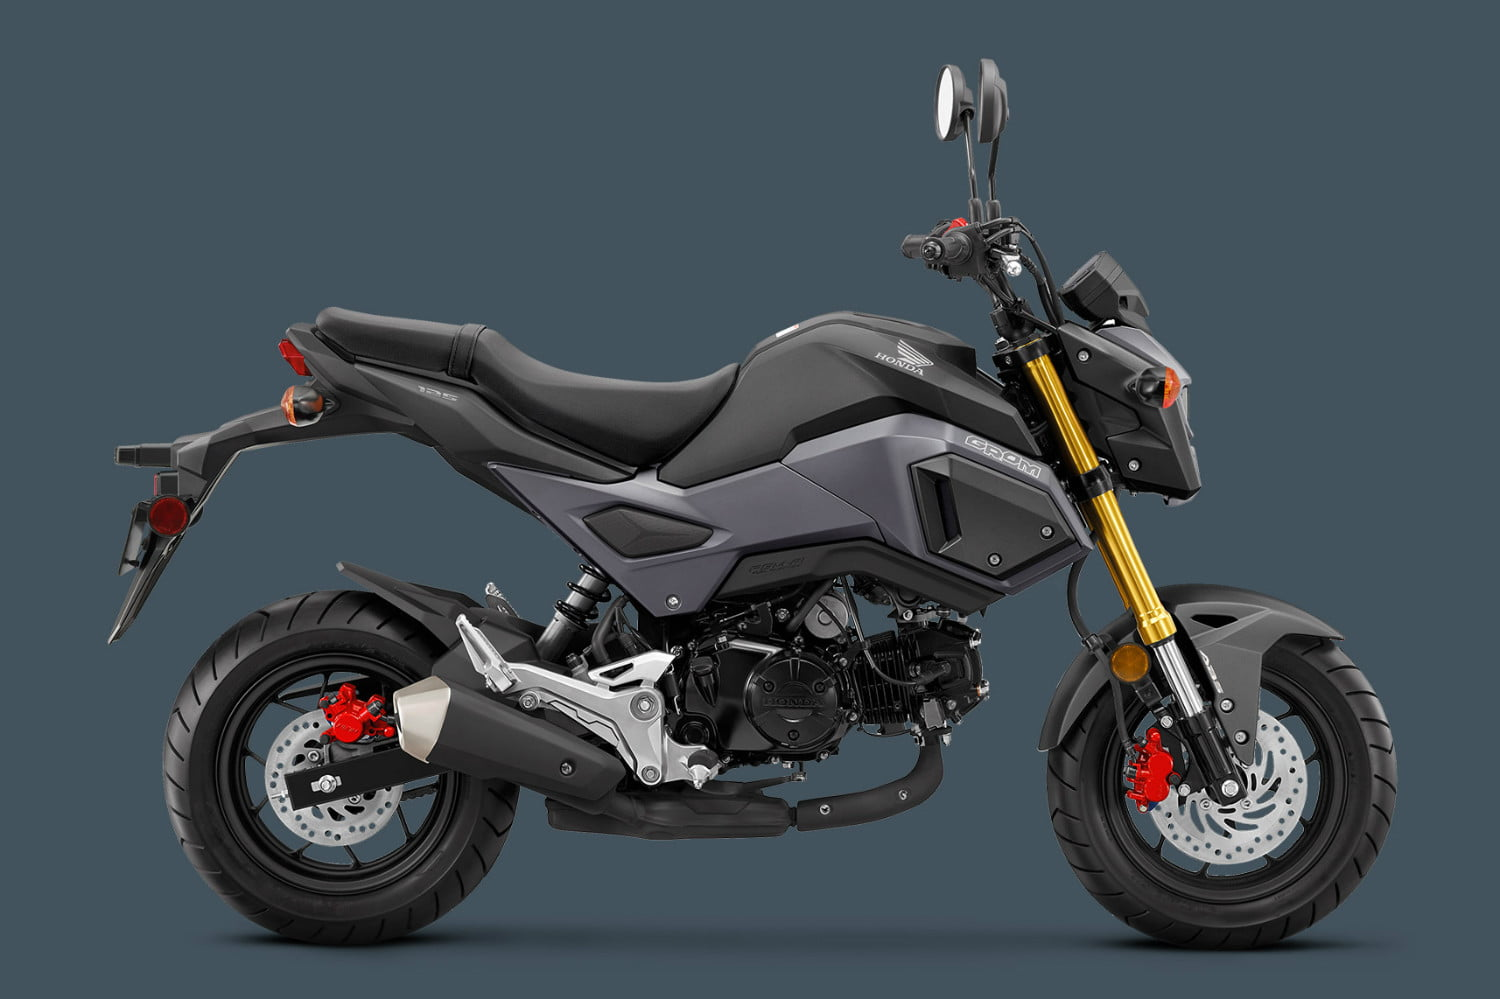 Honda Grom Specs >> The 2018 Honda Grom Motorcycle Adds Abs As An Option